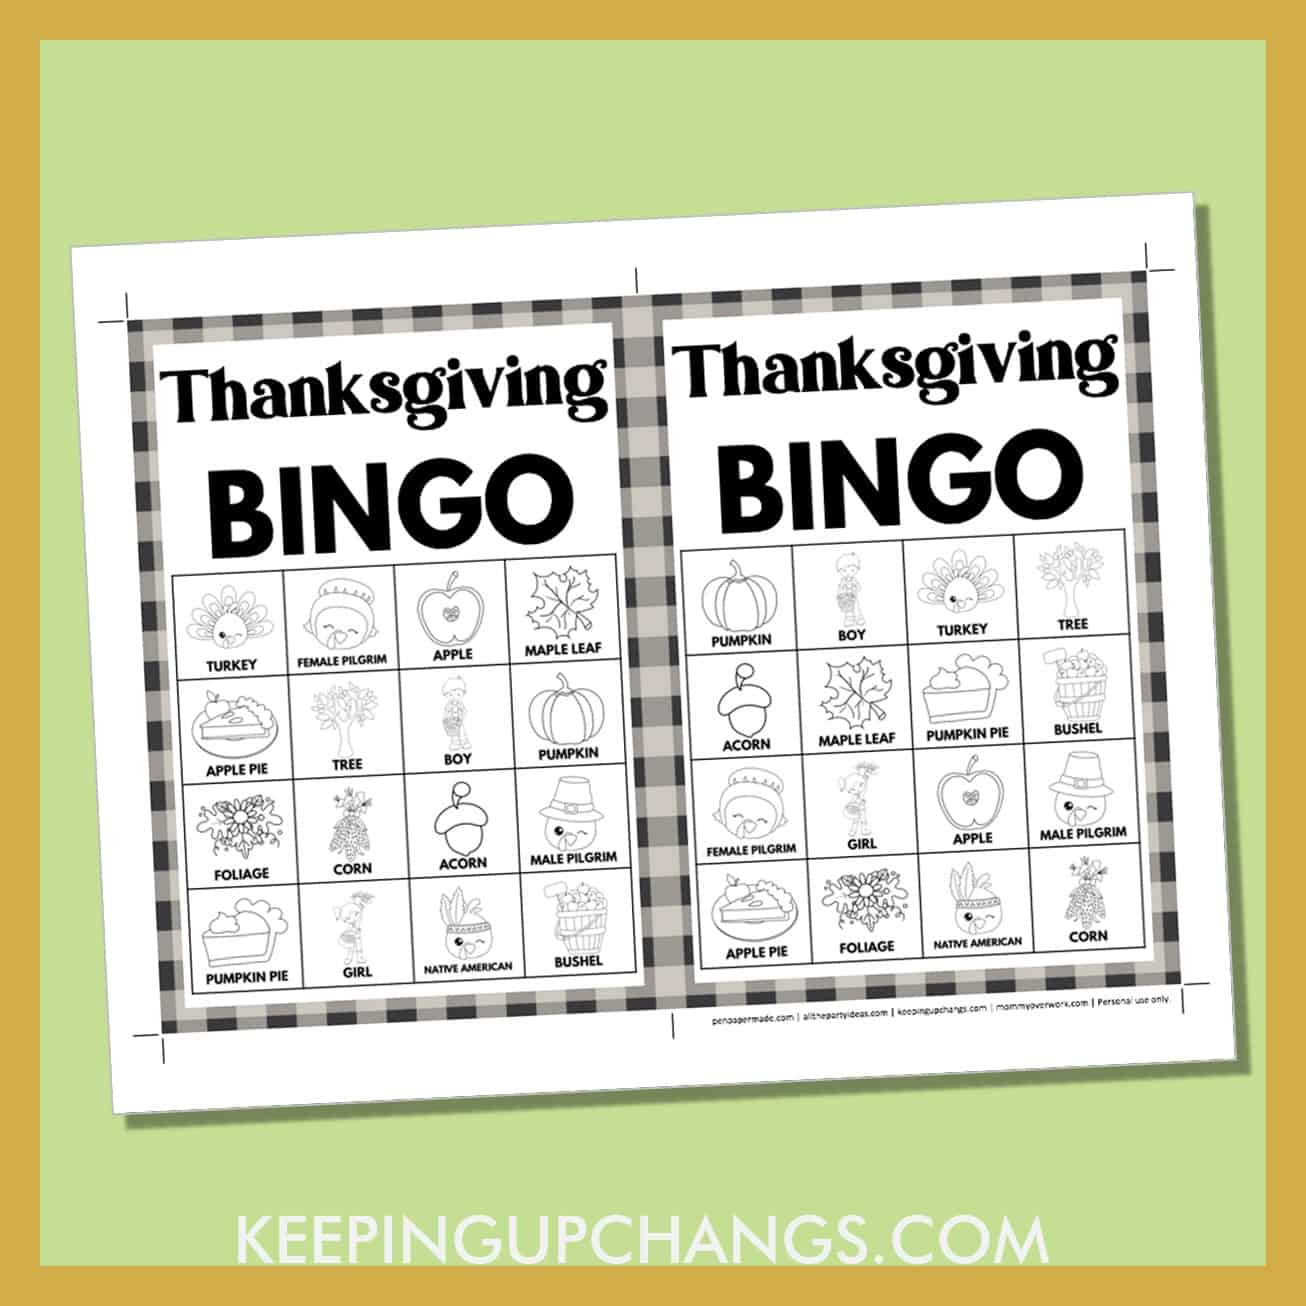 free fall thanksgiving bingo card 4x4 5x7 black white coloring game boards with images and text words.